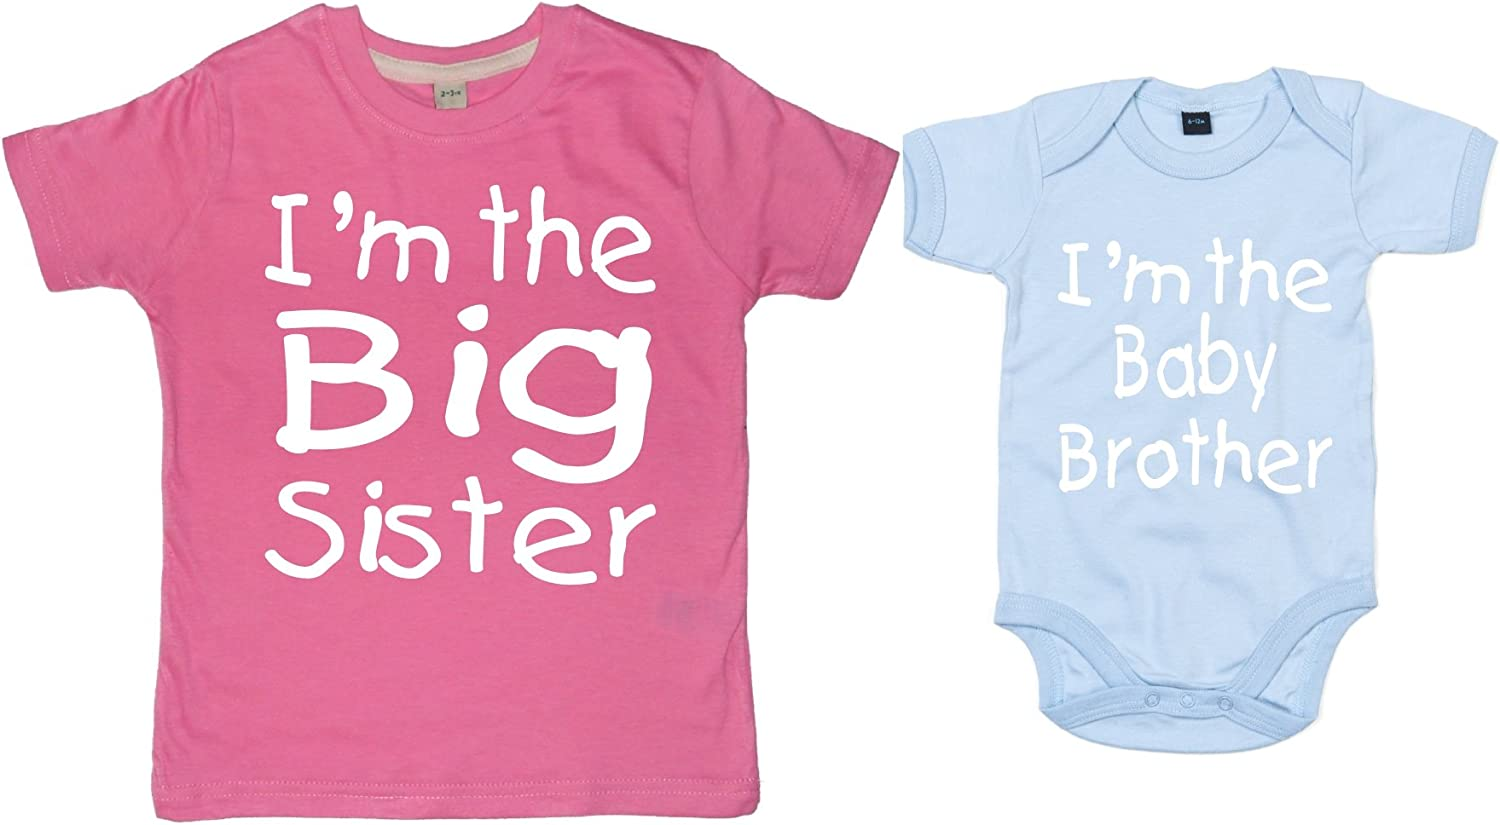 Edward Sinclair Big Sister Coordinati Regalo di Porcellana Maglietta E Body Baby Brother